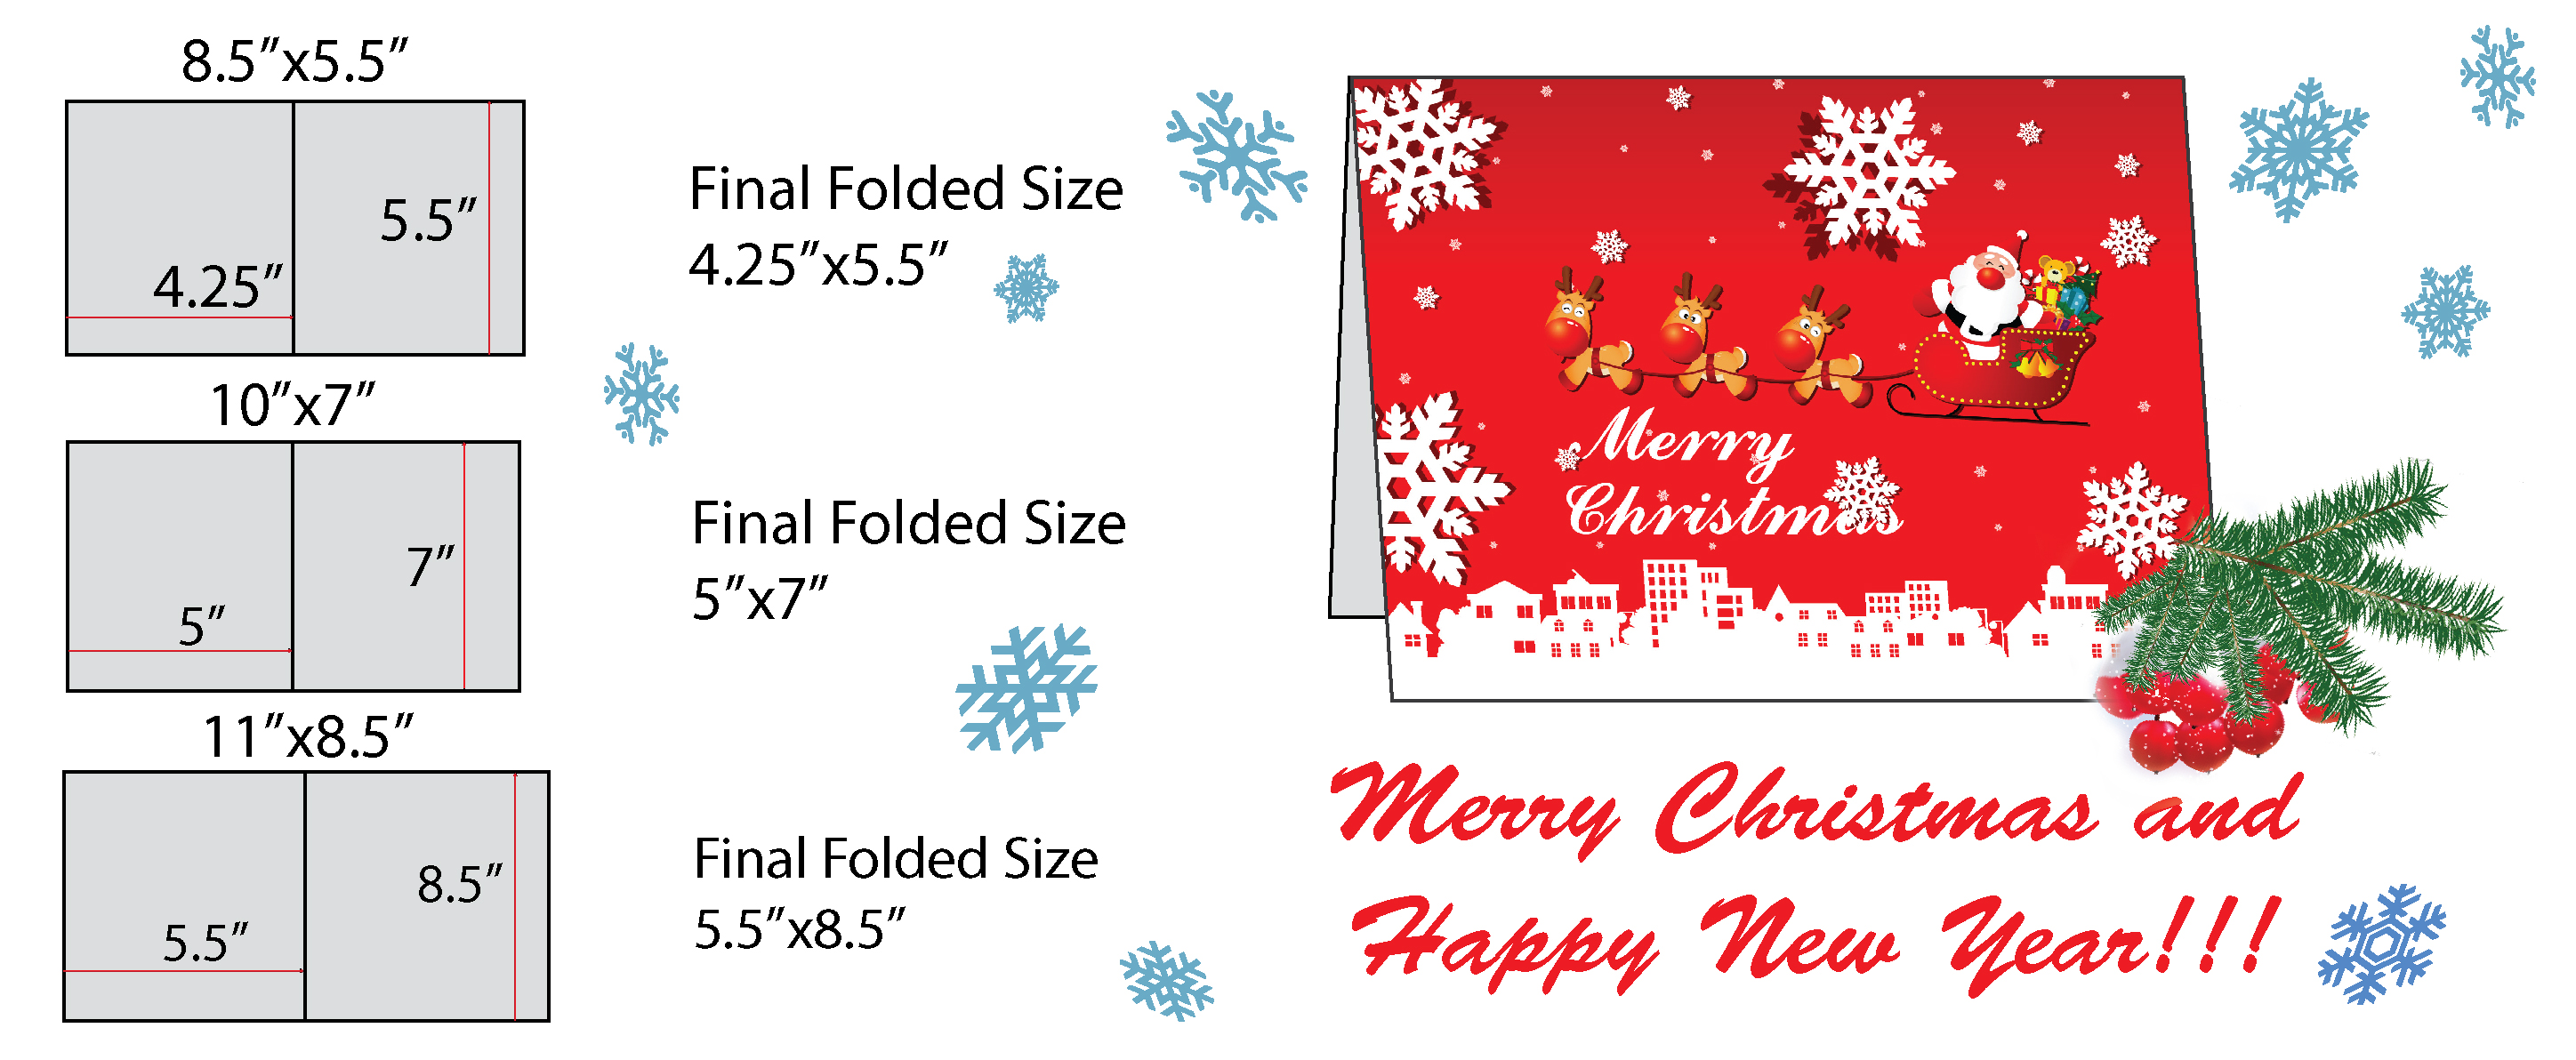 Greetings cards in toronto advertising graphic design greeting card finished folded sizes available 10x7 85x11 85x55 m4hsunfo